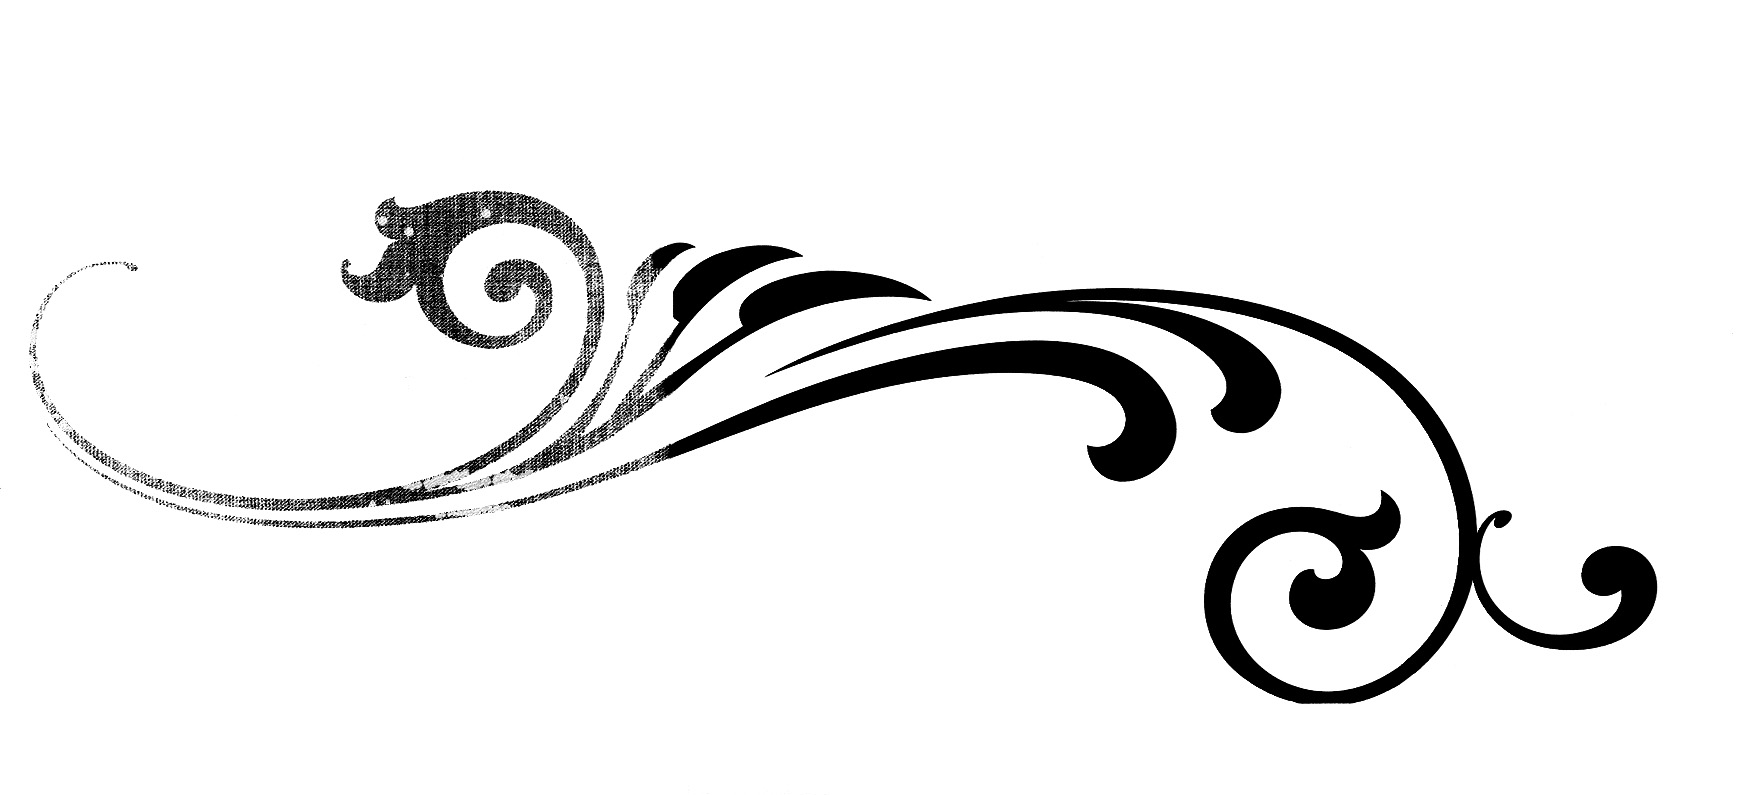 Free Free Flourish, Download Free Clip Art, Free Clip Art on.